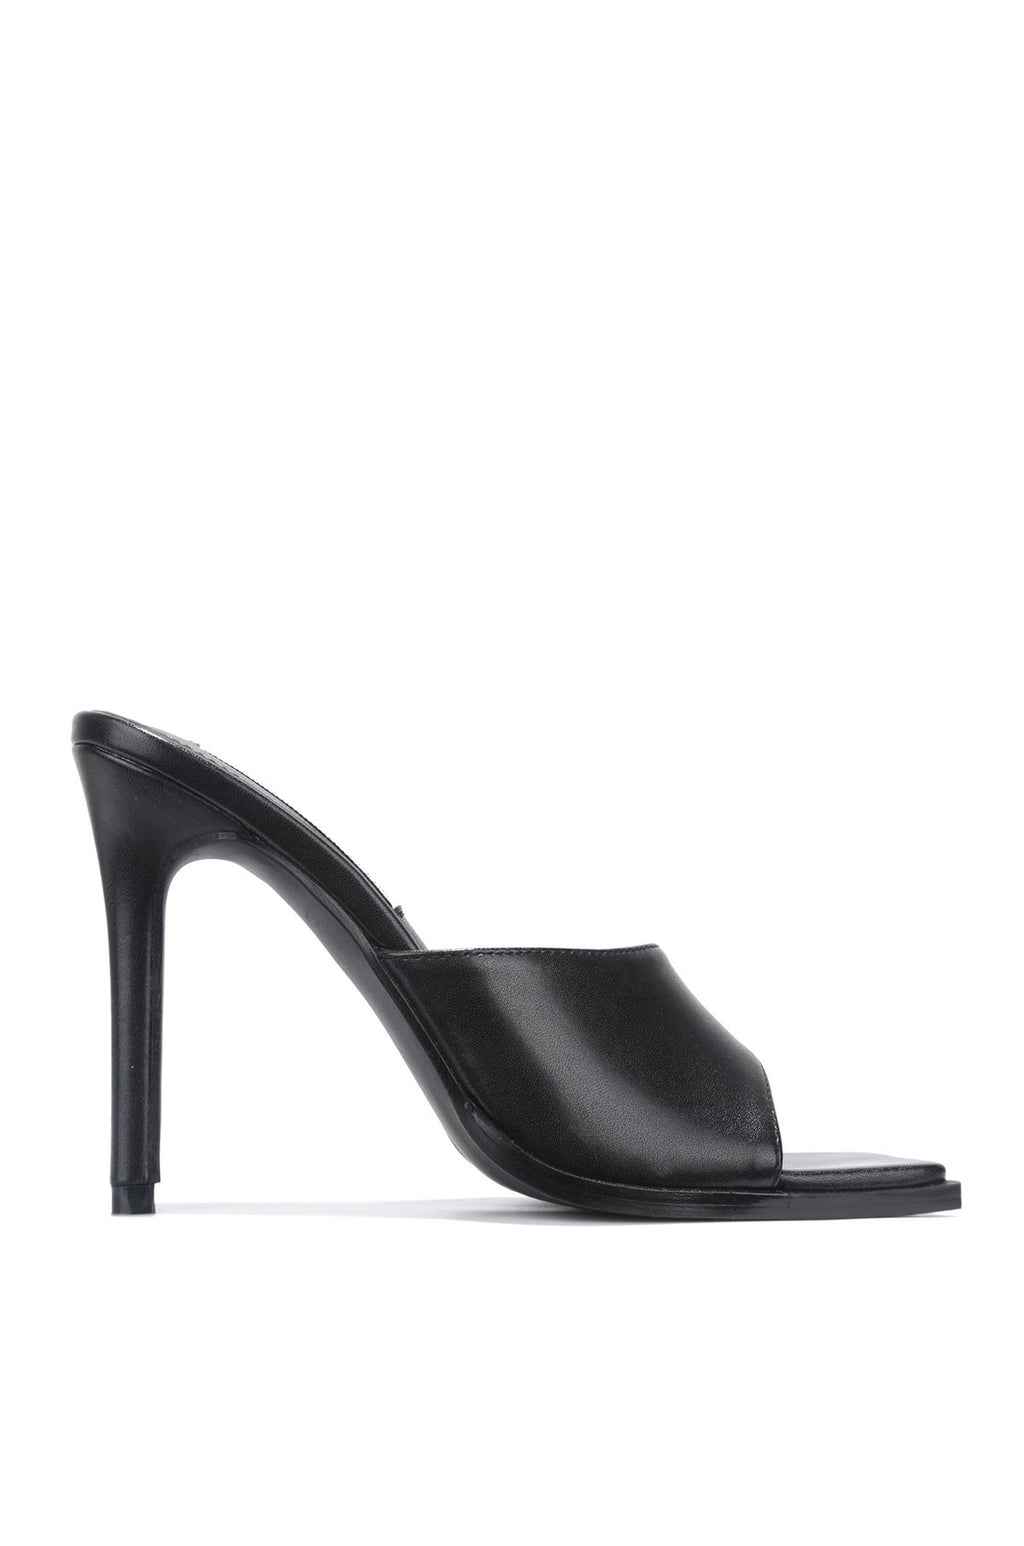 Think About It Square Toe Mule - Black - Swank A Posh